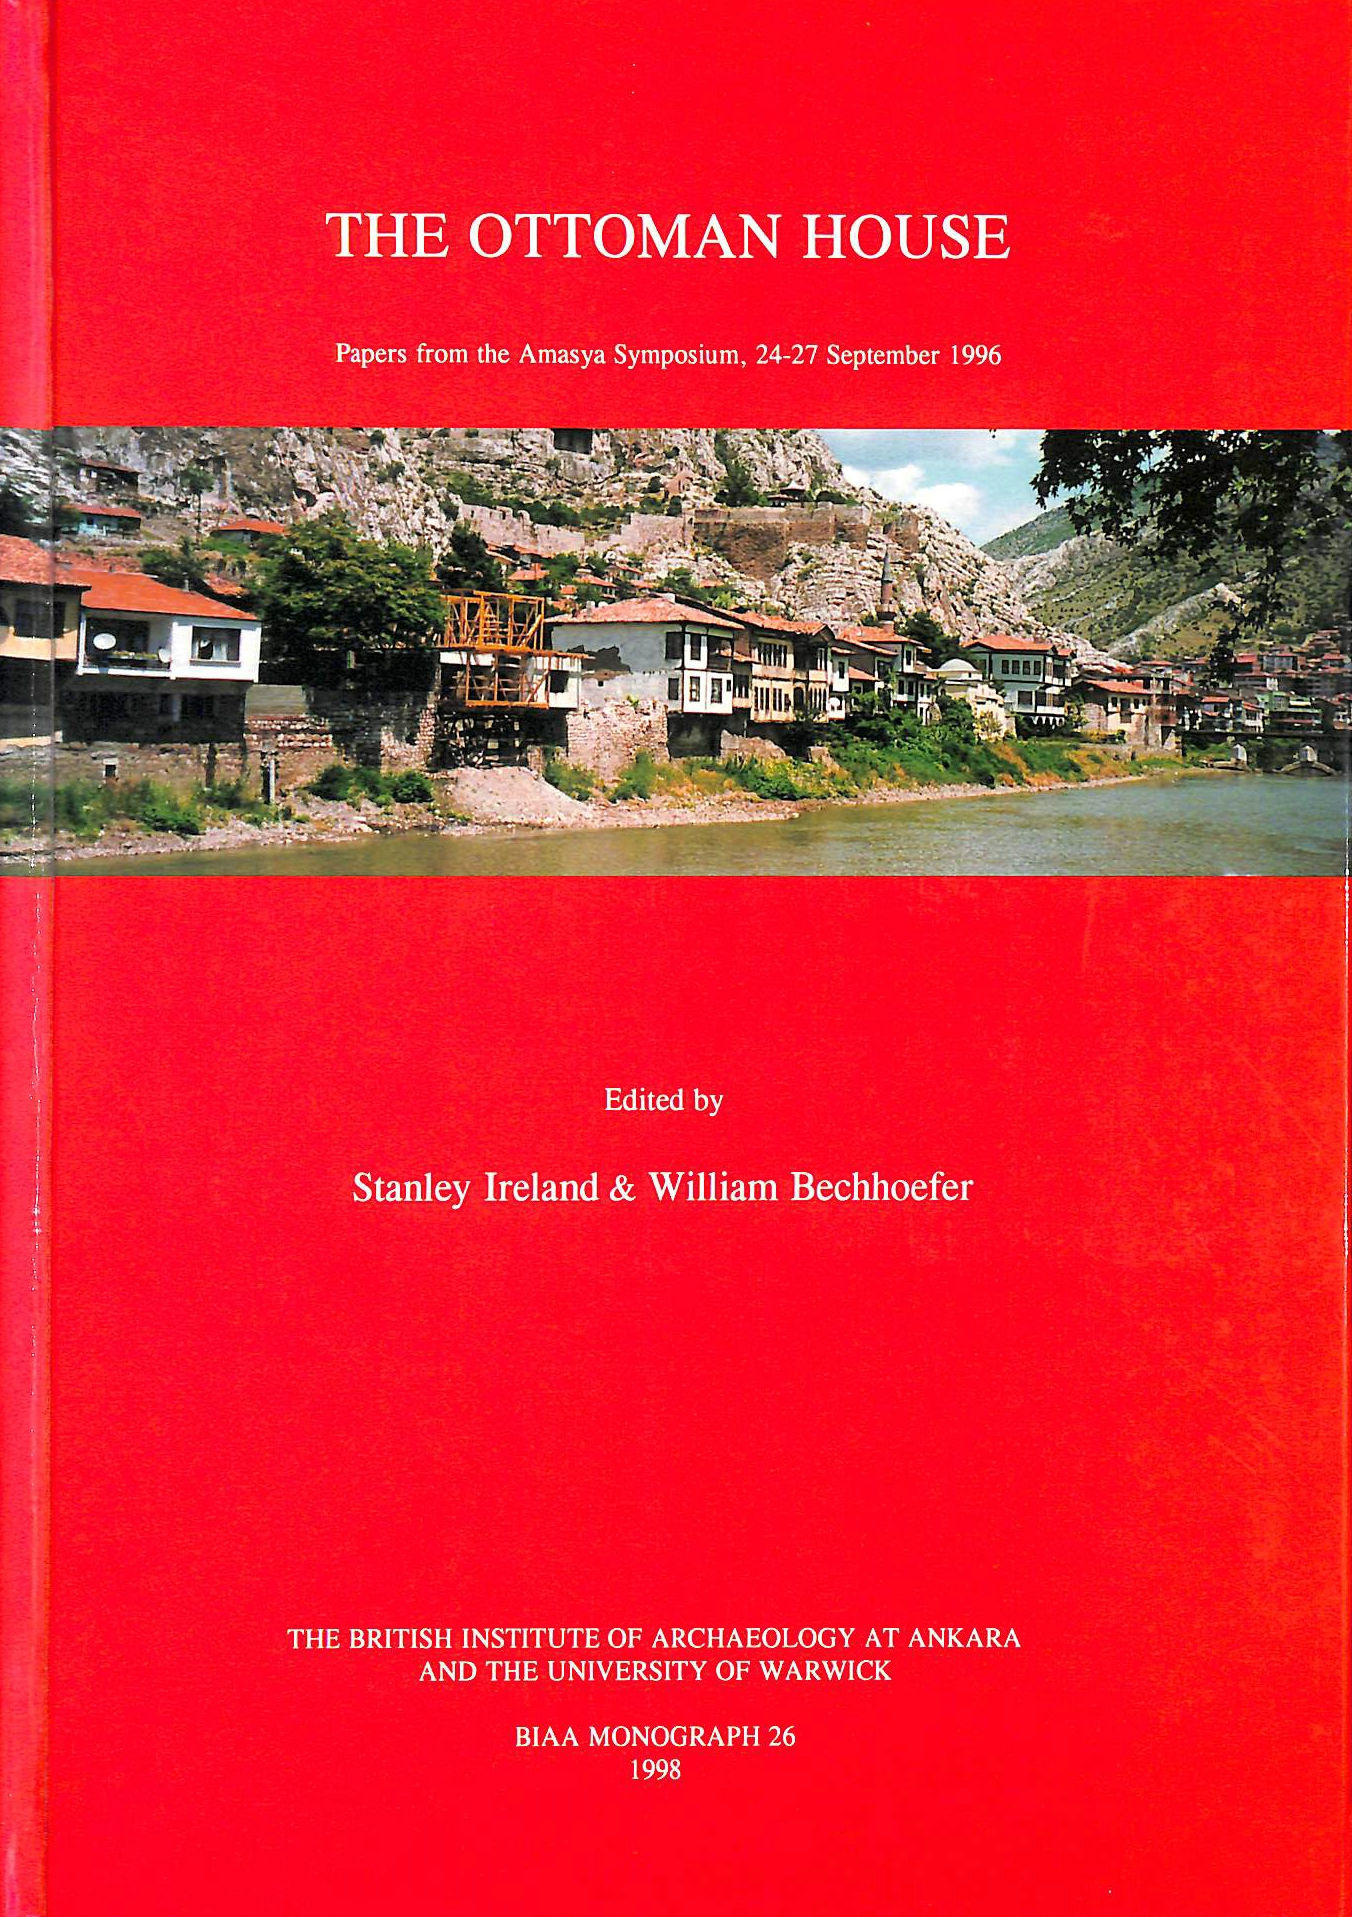 Image for The Ottoman House: Papers from the Amasya Symposium, 24-27 September 1996